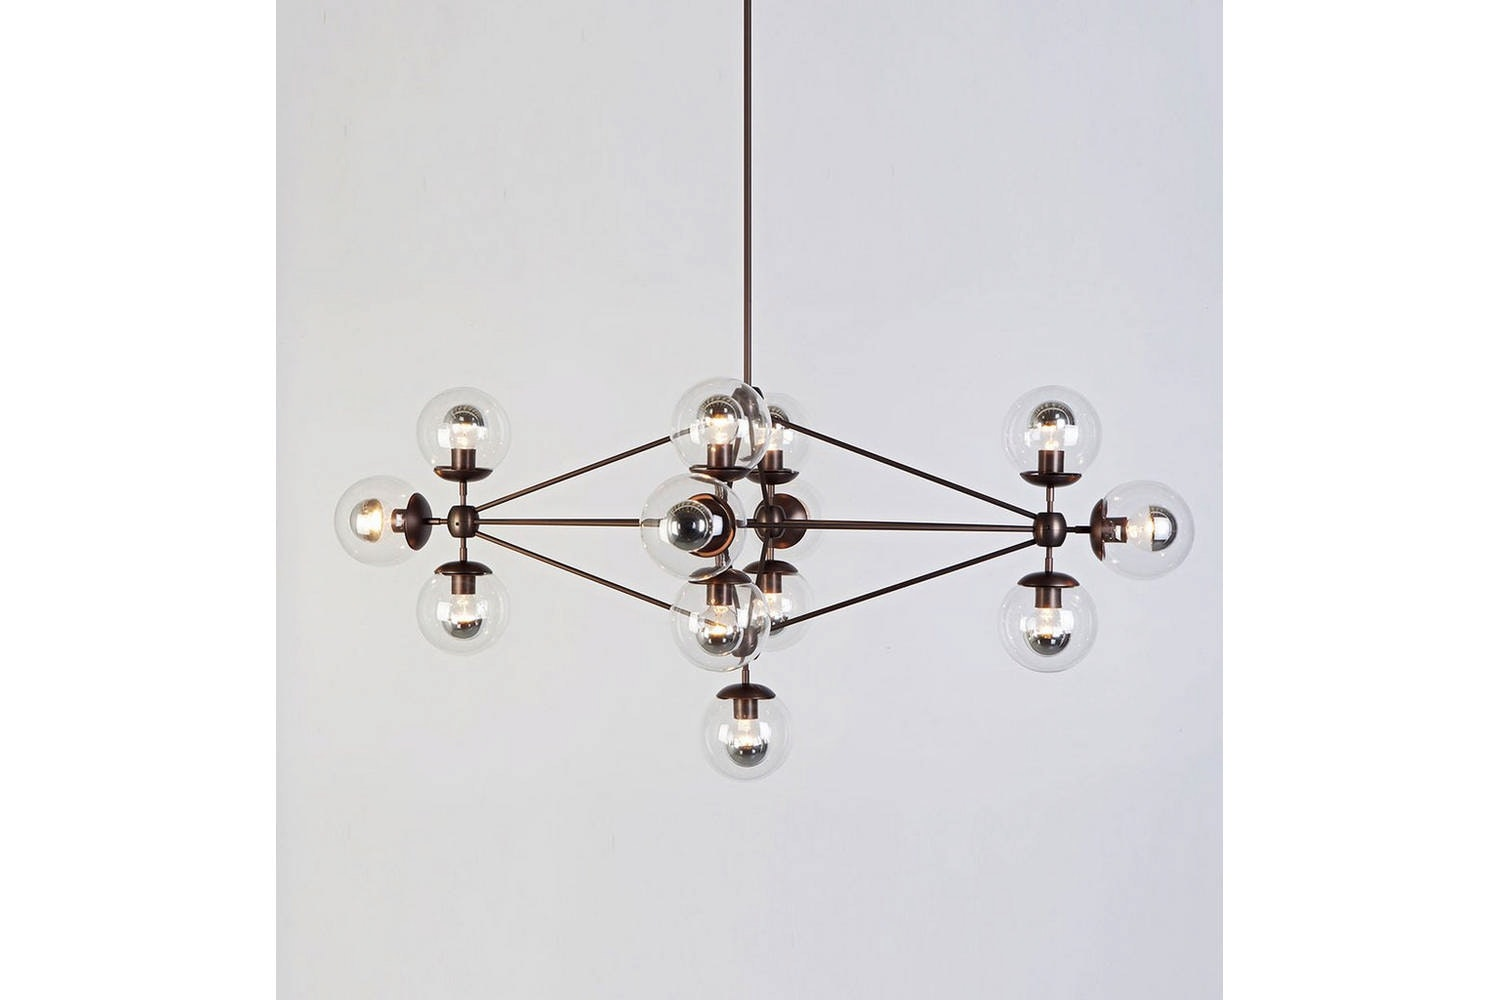 Modo Chandelier - Diamond 13 Globes by Jason Miller for Roll & Hill